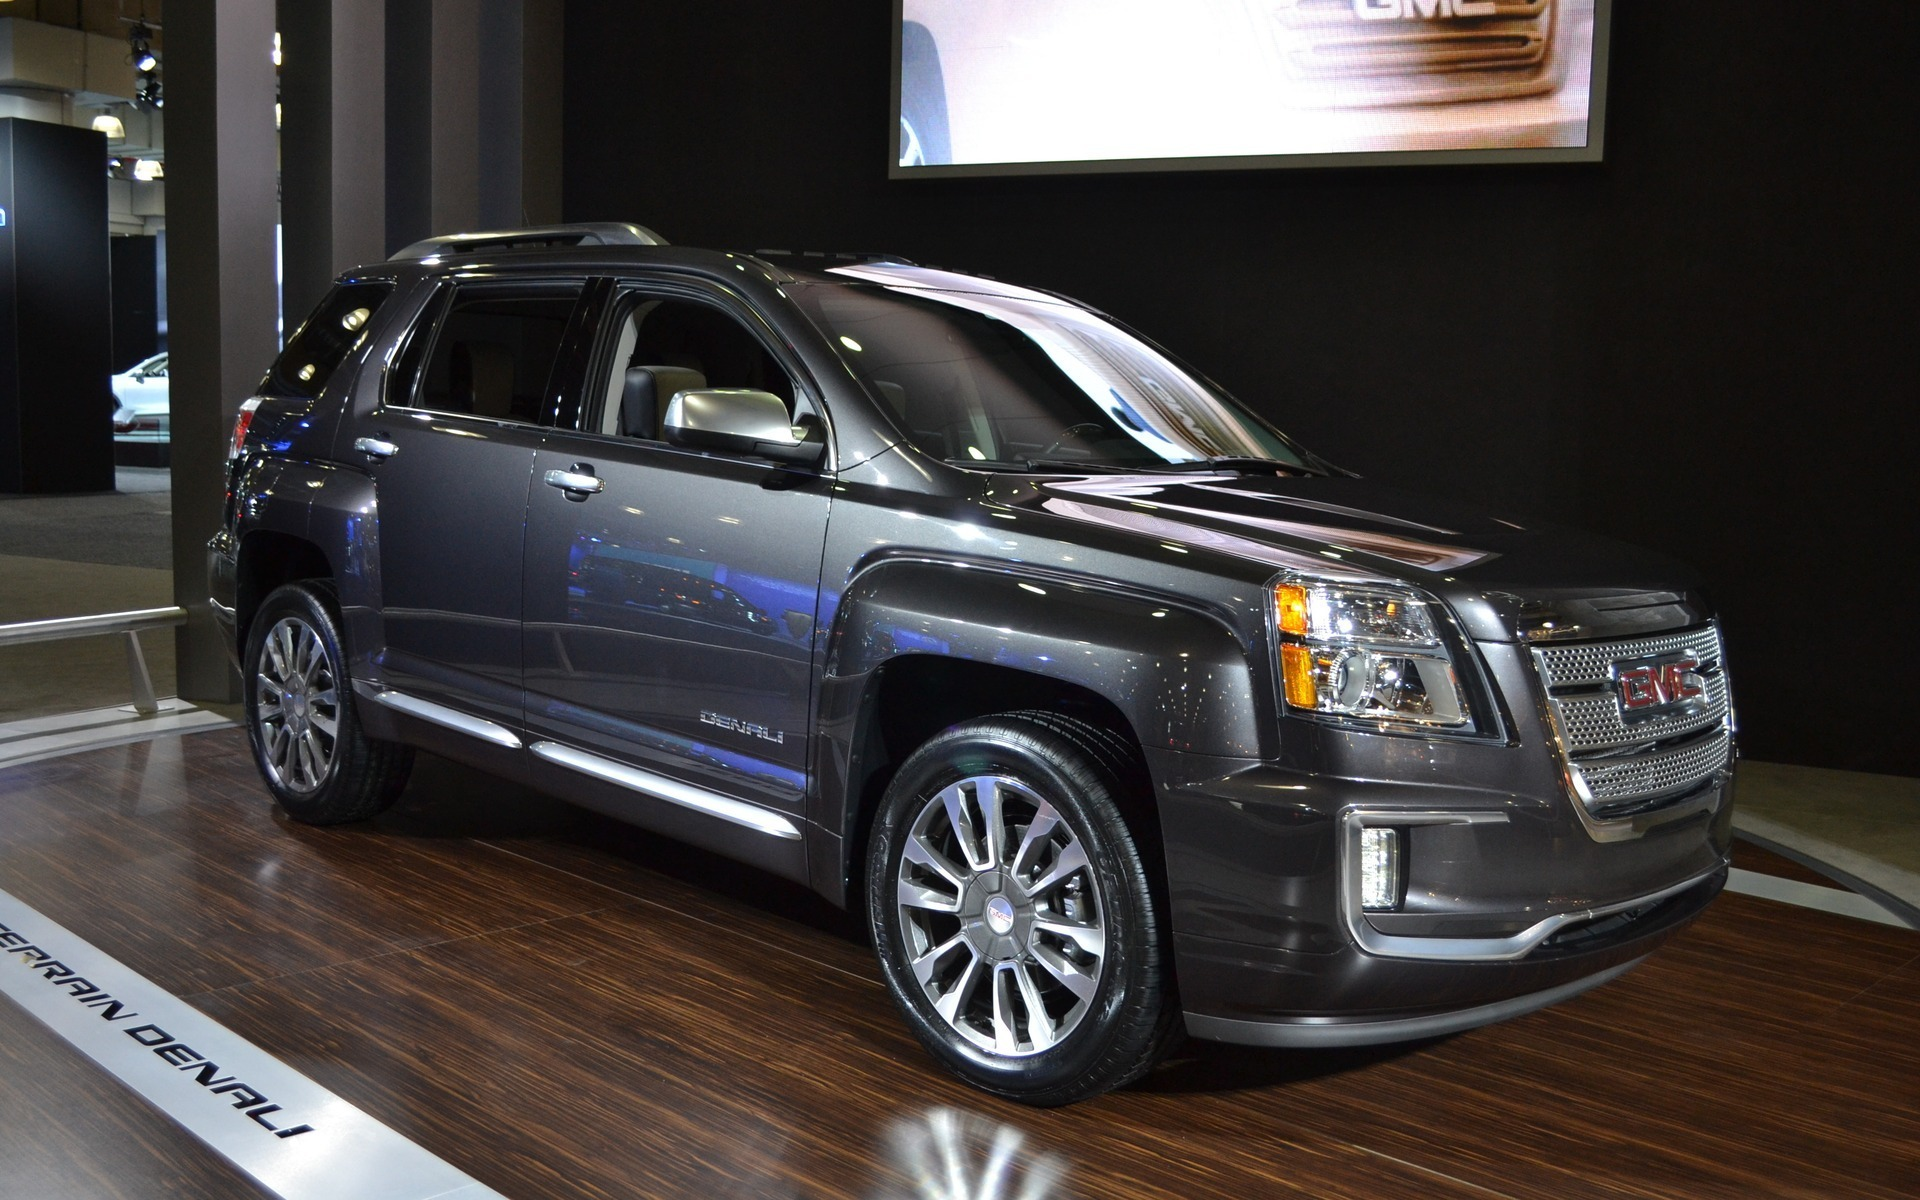 2016 gmc terrain unveiled in new york the car guide. Black Bedroom Furniture Sets. Home Design Ideas